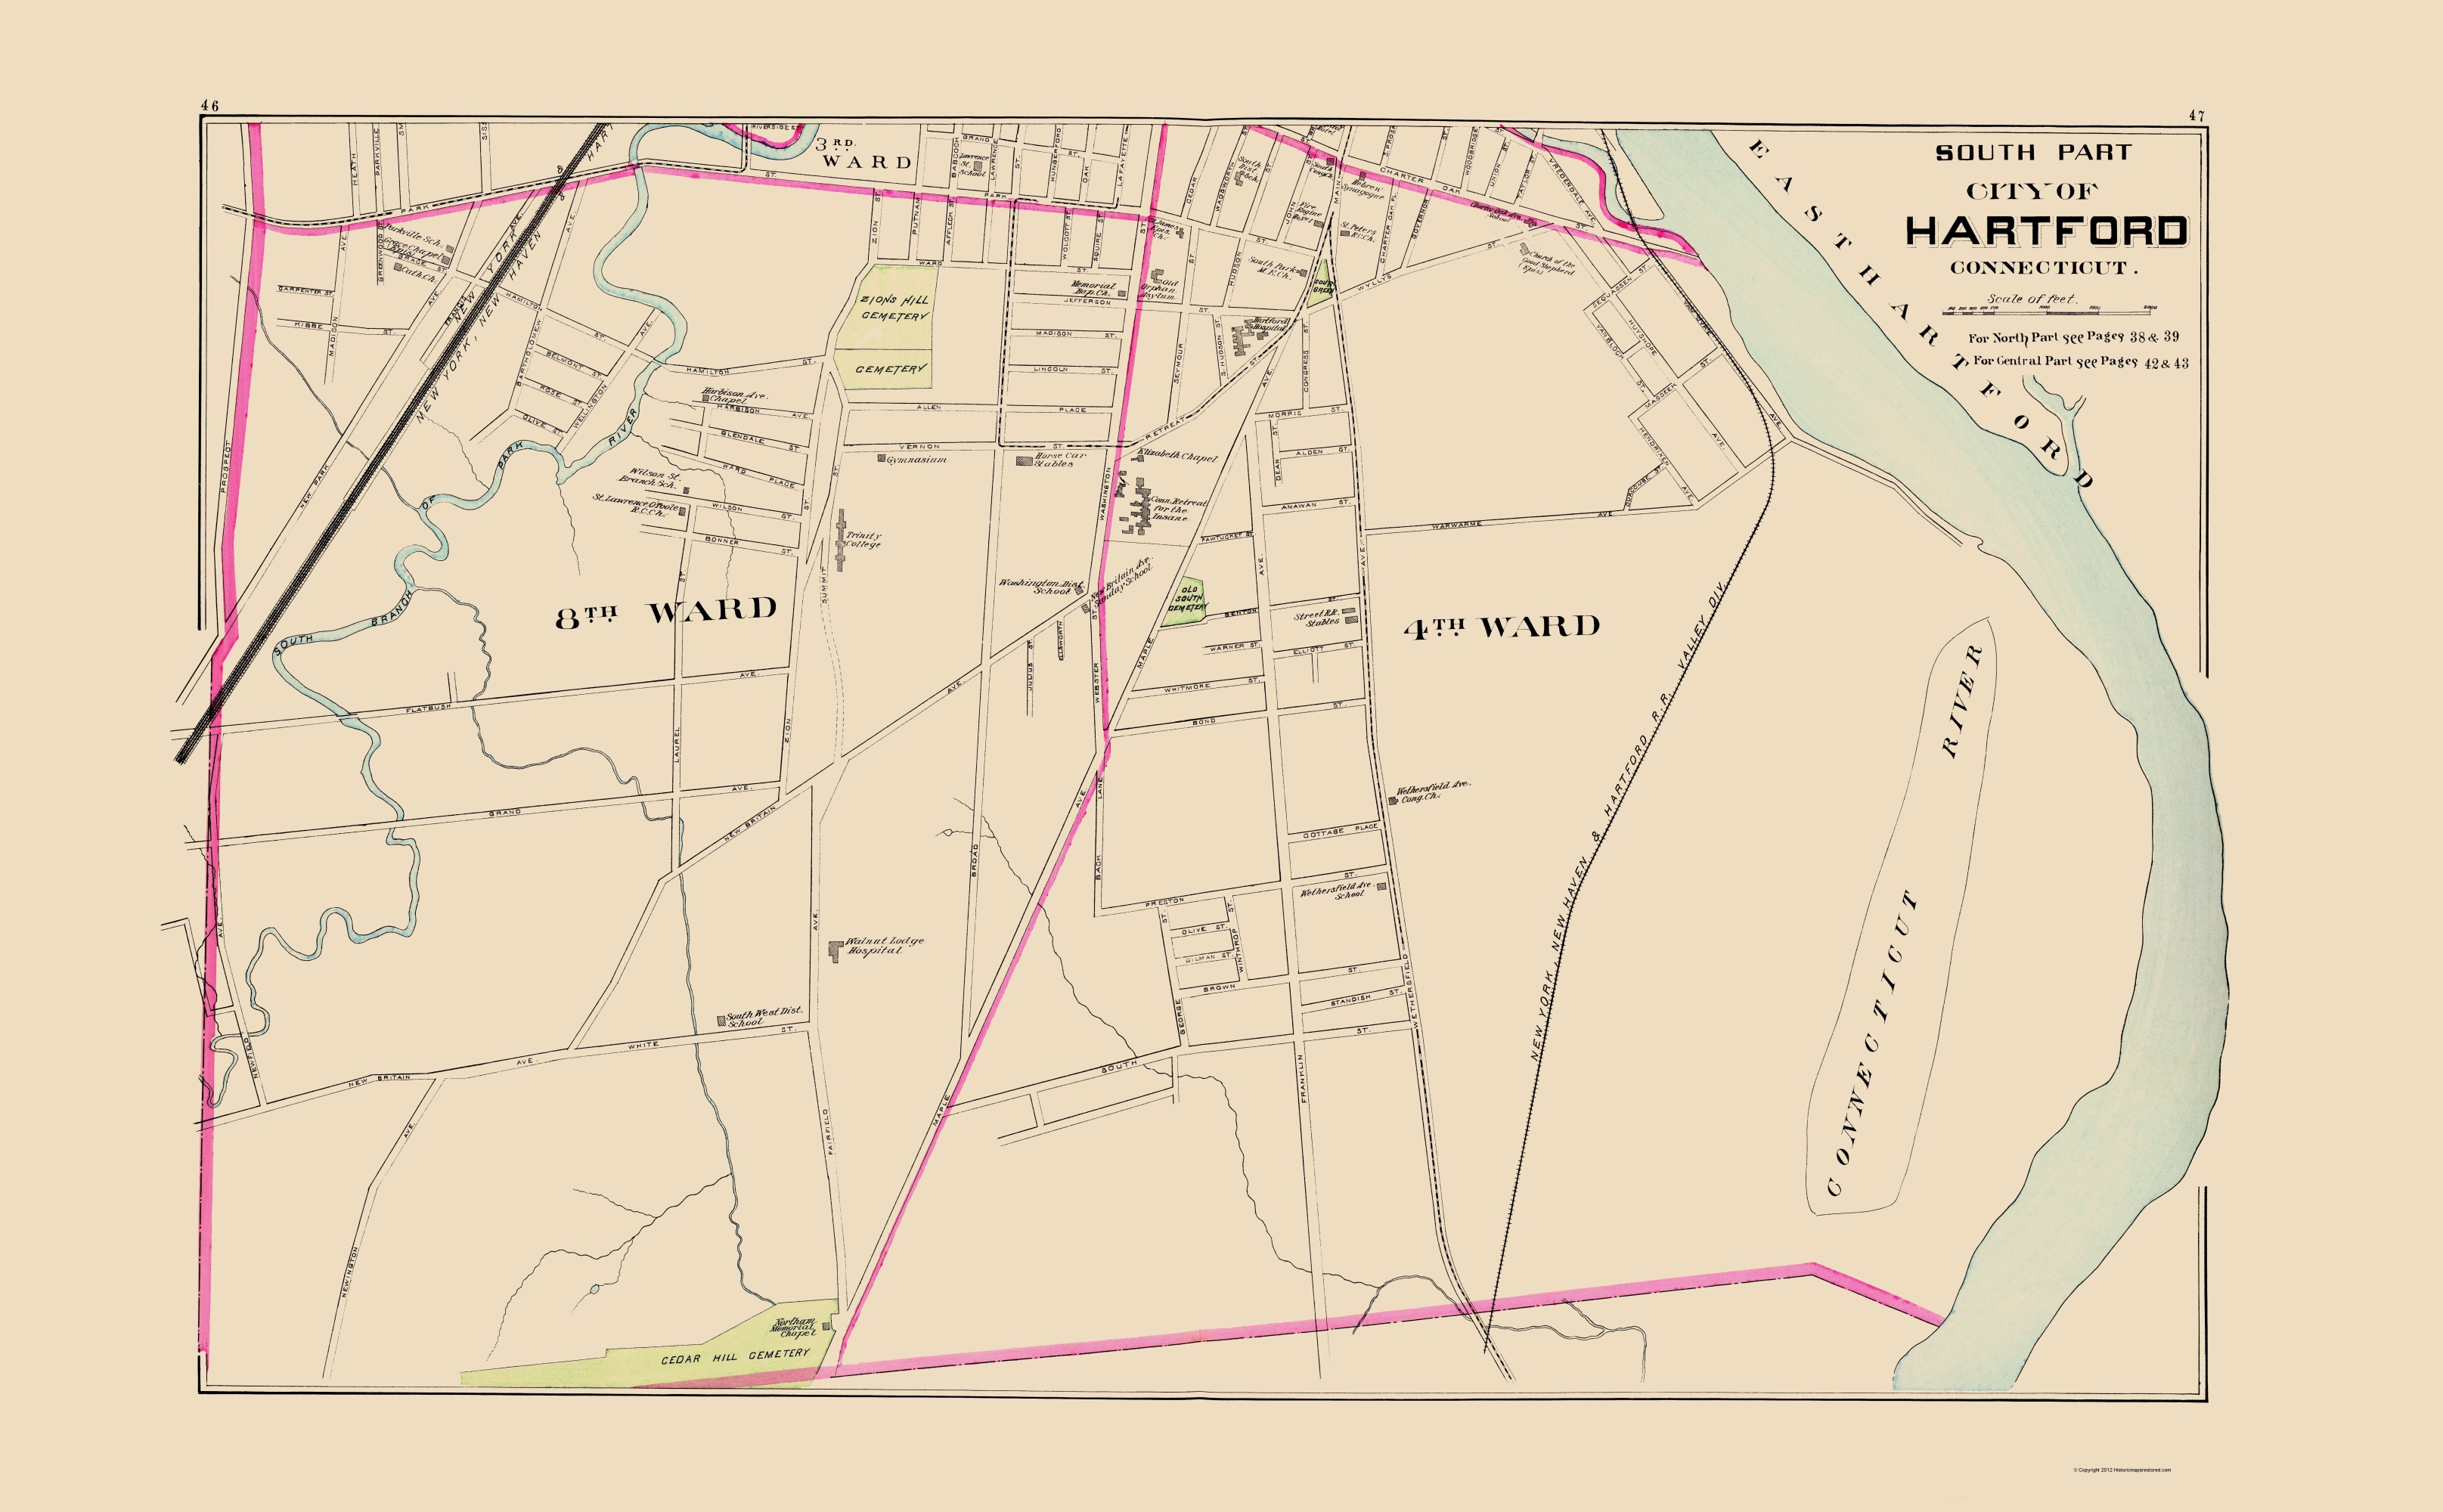 Old City Map - Hartford Connecticut South Part 1893